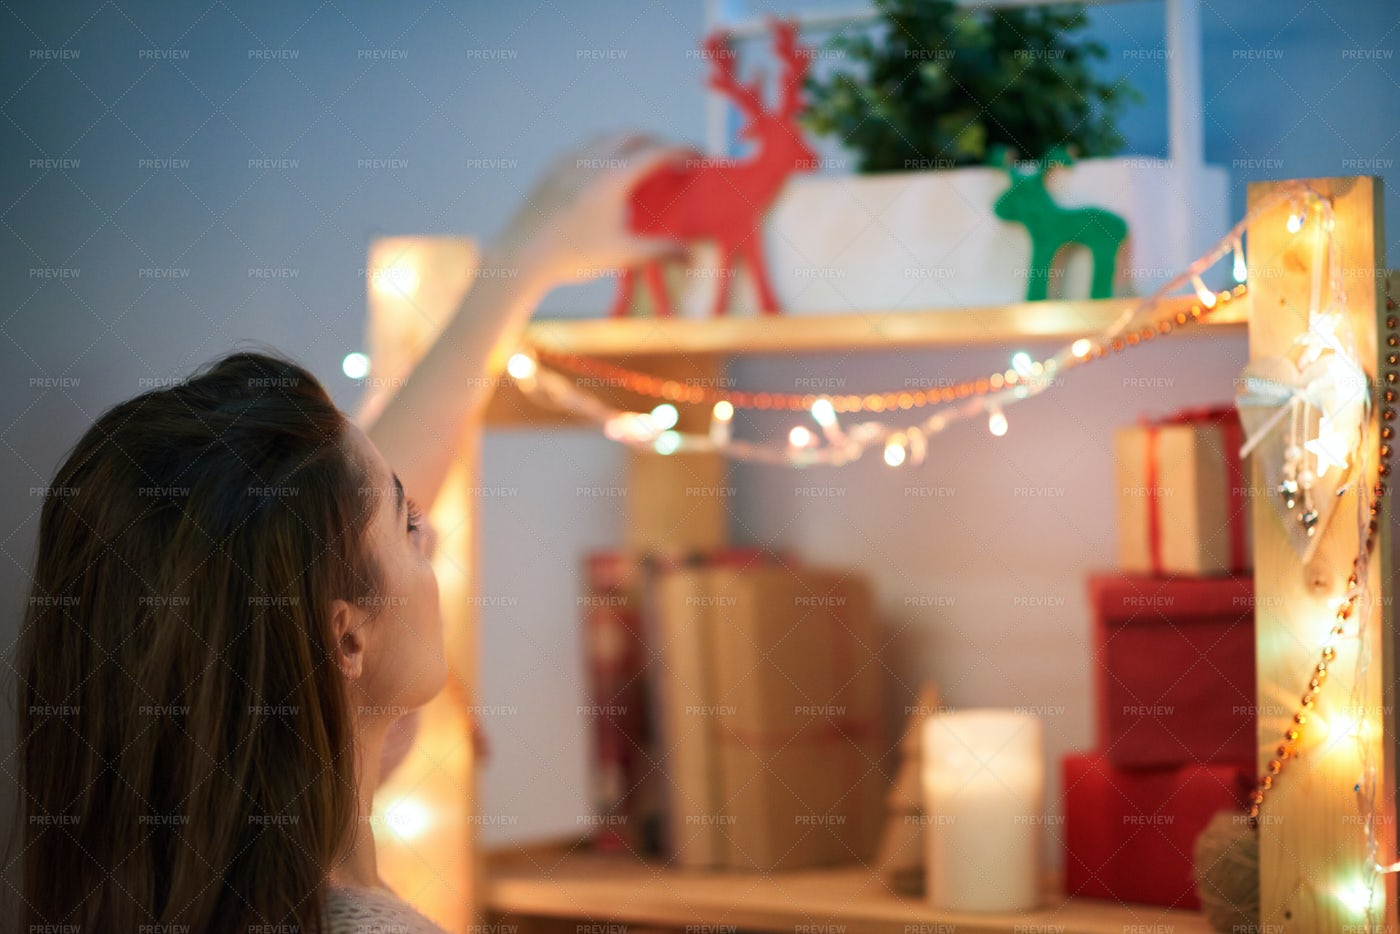 Decorating Room For Christmas...: Stock Photos